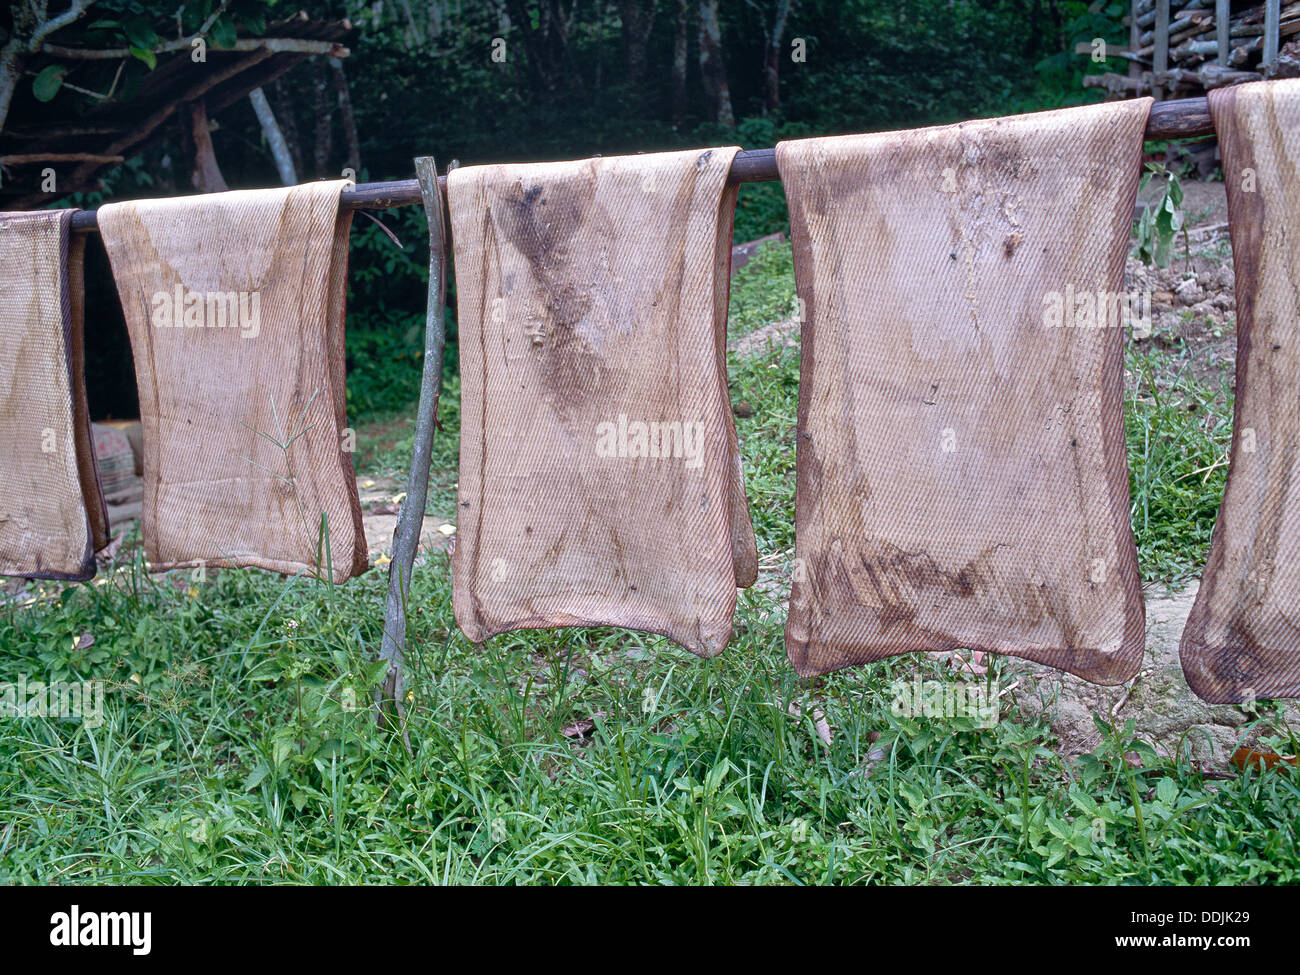 Raw latex rolled sheets drying, native village. - Stock Image